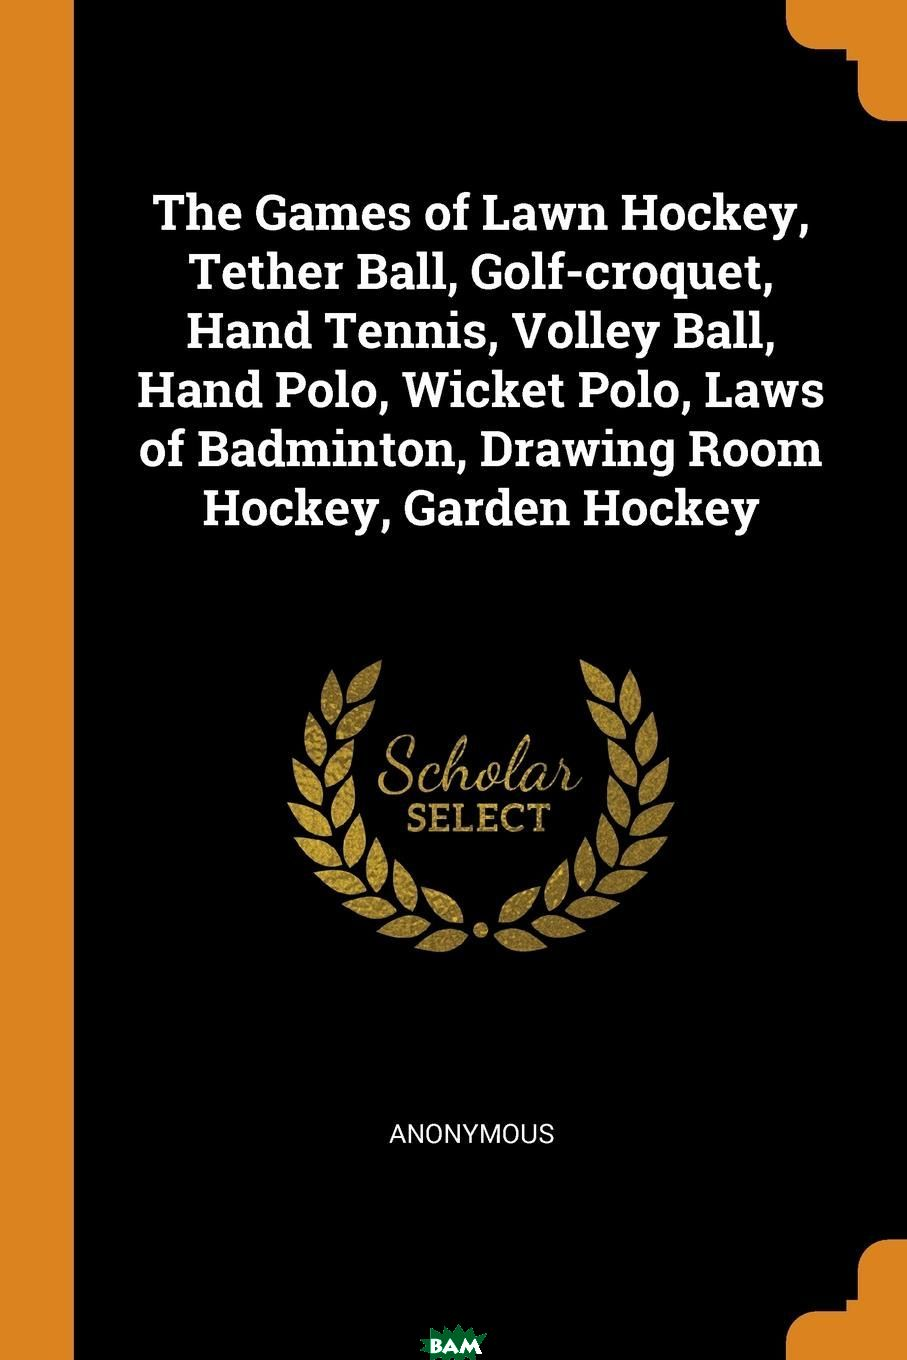 The Games of Lawn Hockey, Tether Ball, Golf-croquet, Hand Tennis, Volley Ball, Hand Polo, Wicket Polo, Laws of Badminton, Drawing Room Hockey, Garden Hockey, M. l`abbe Trochon, 9780342574117  - купить со скидкой